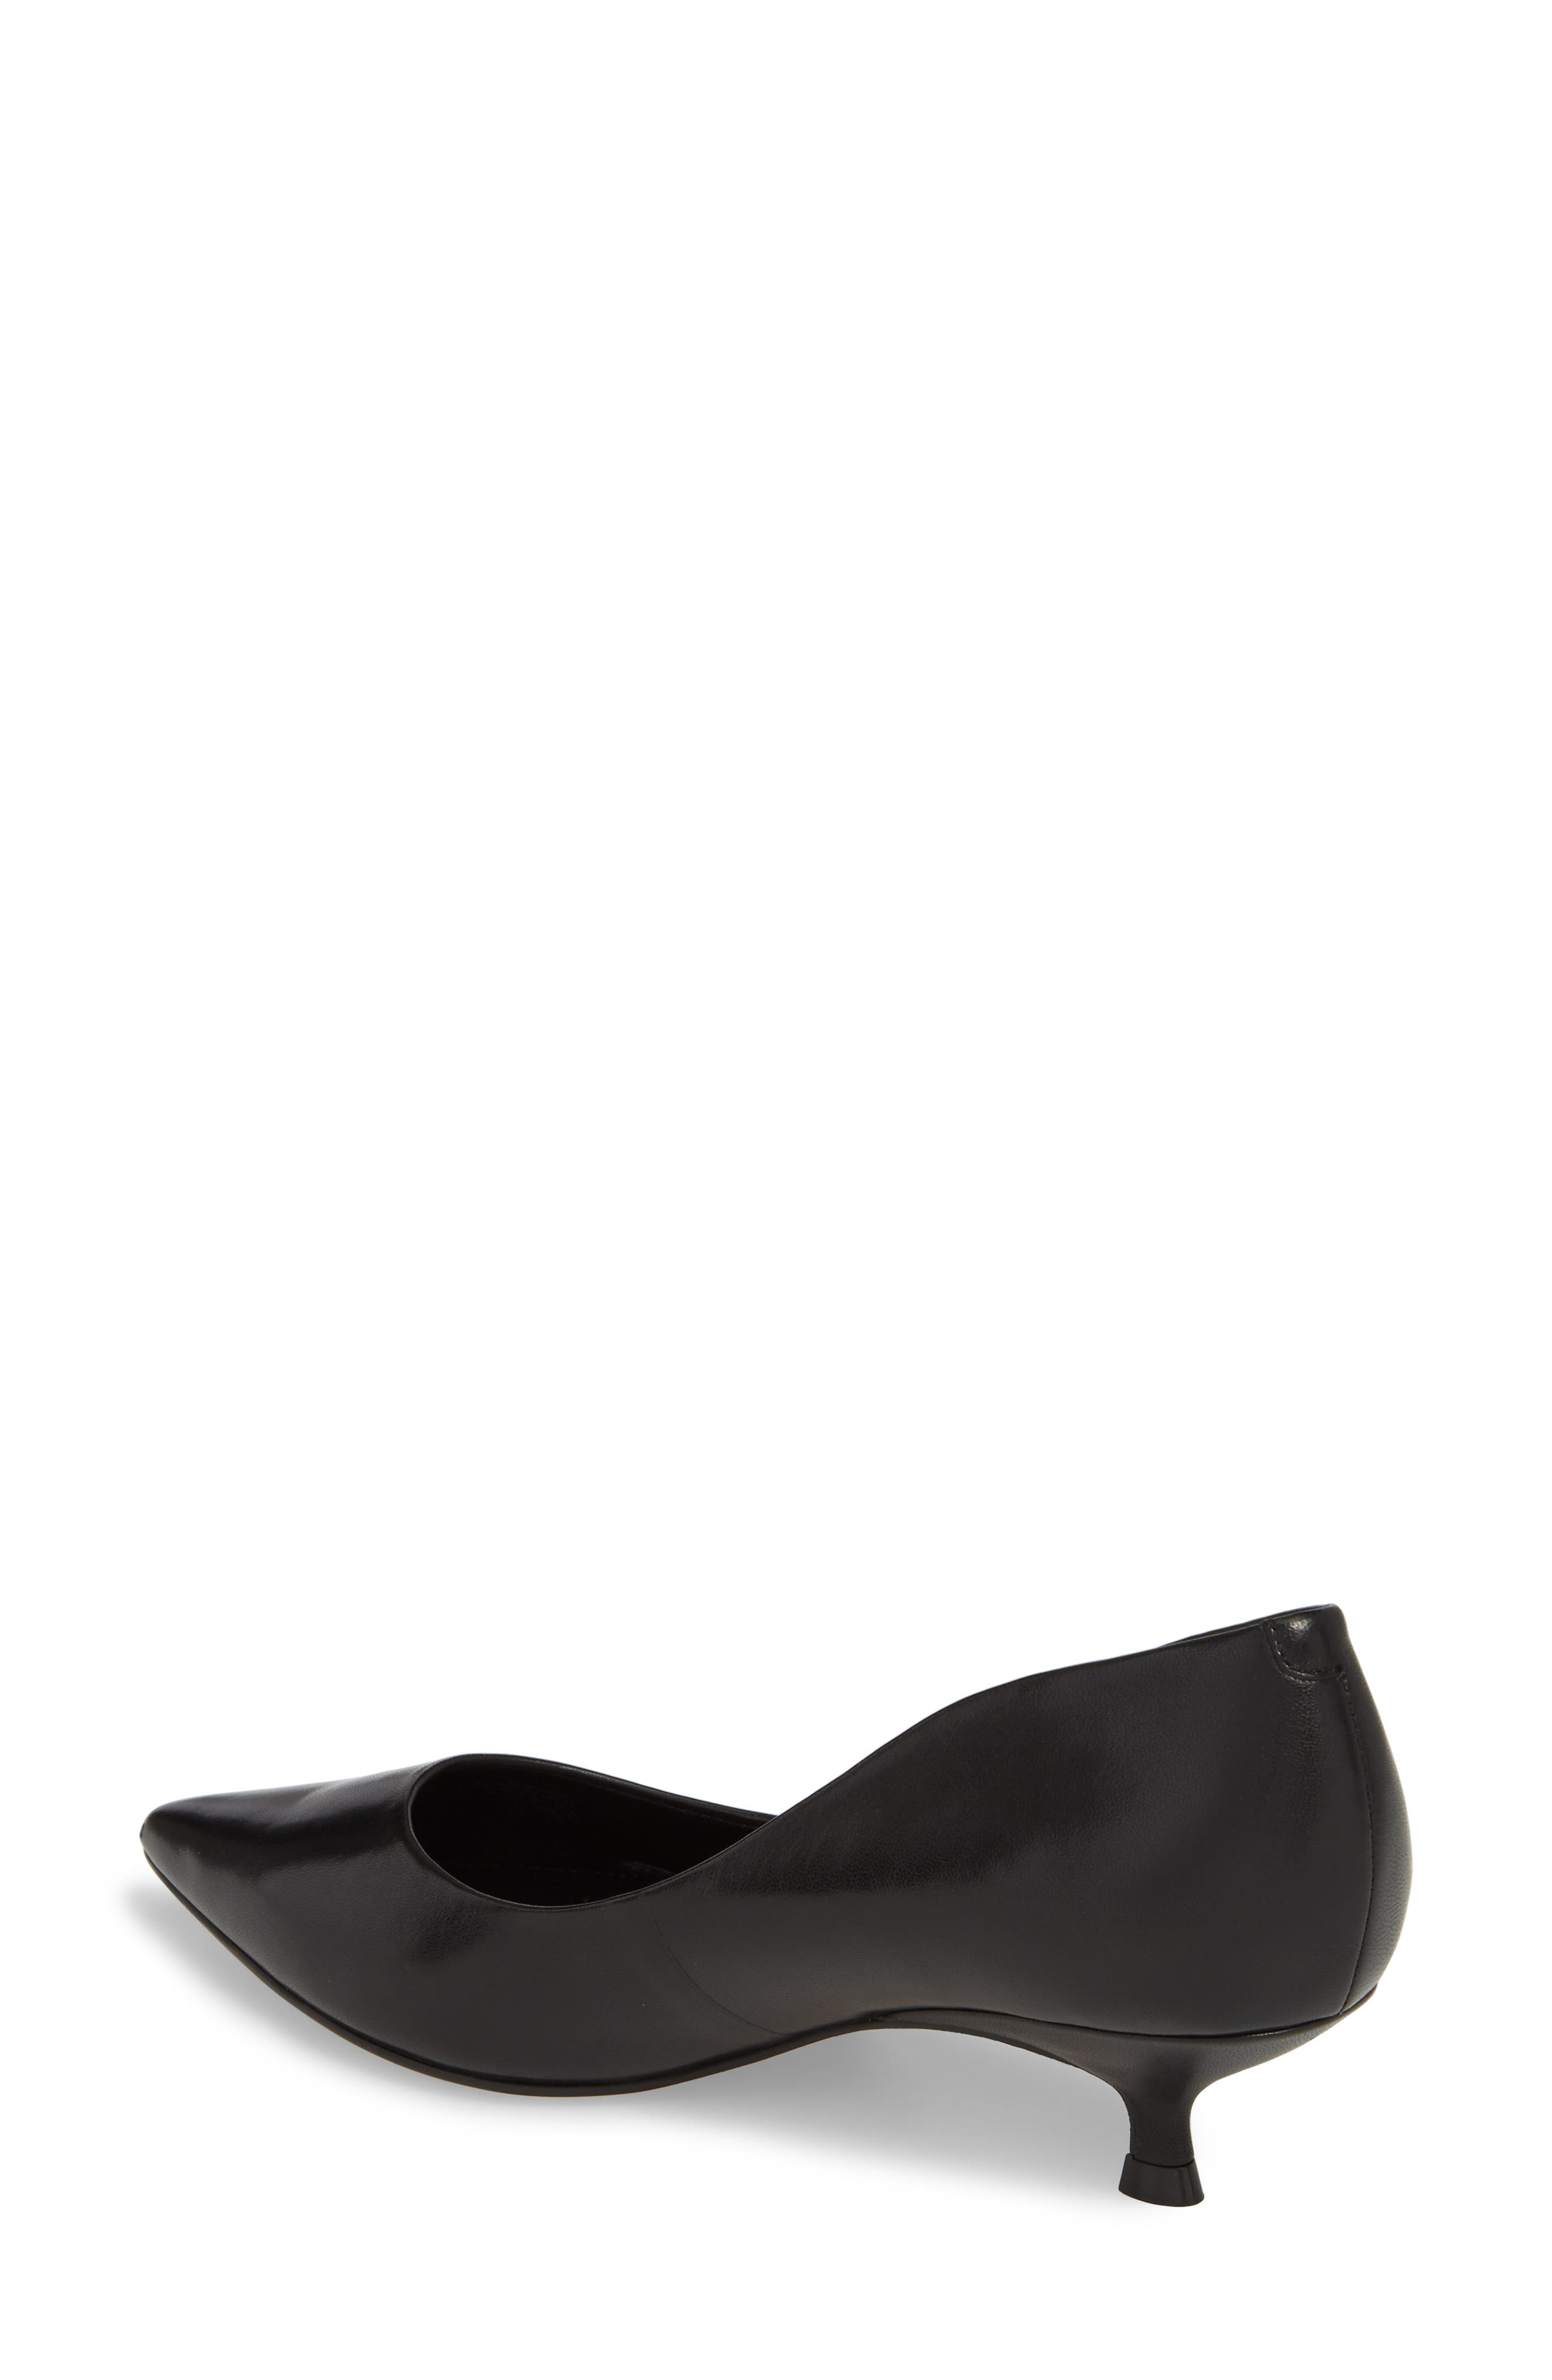 Xanthe Kitten Heel Pump,                             Alternate thumbnail 6, color,